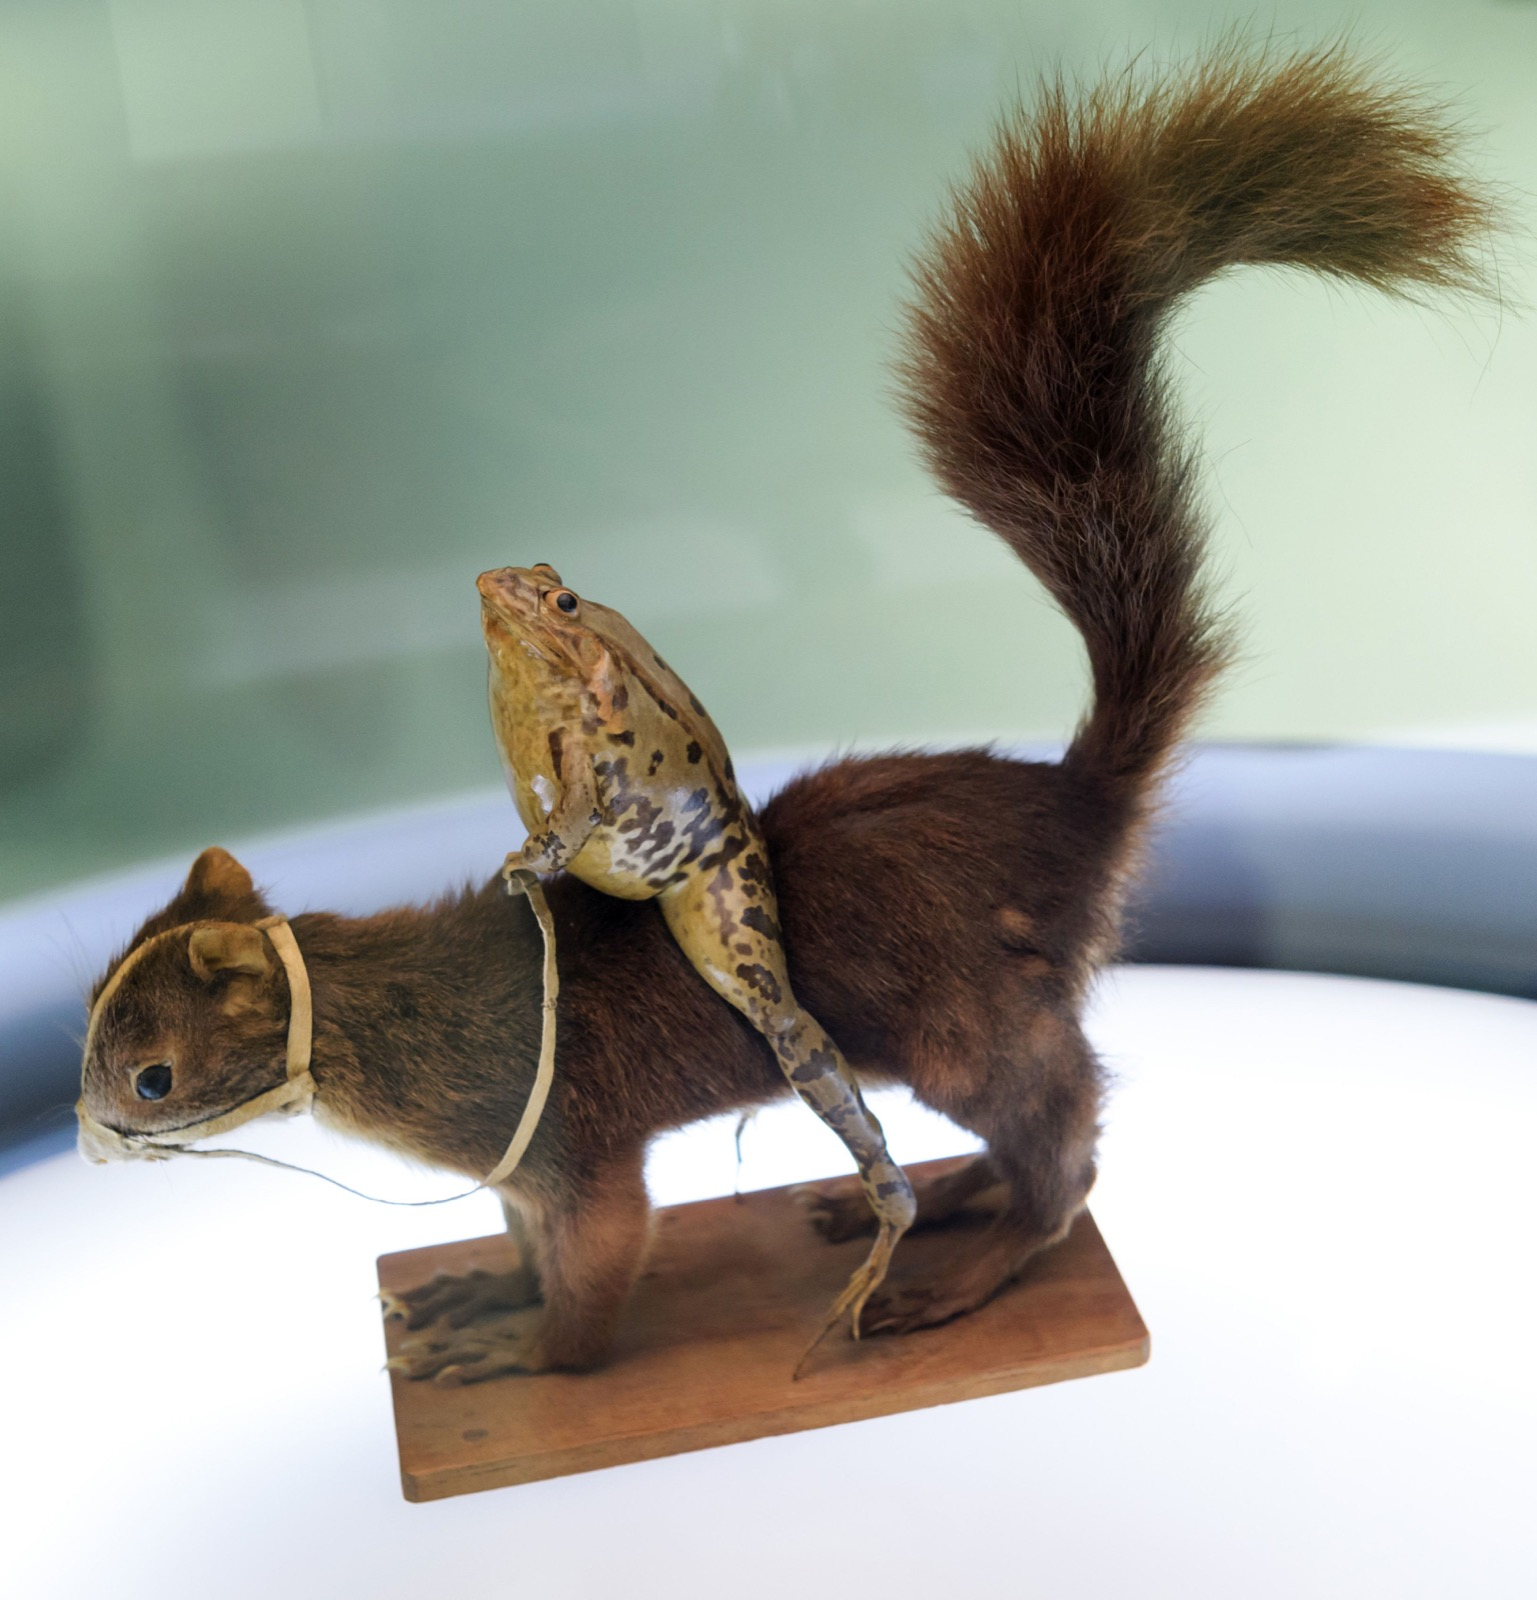 Frog-riding-a-squirrel-at-Frog-Museum-in-Estavayer-le-Lac-western-Switzerland-FABRICE-COFFRINI-AFP-Getty-Images-thechicflaneuse